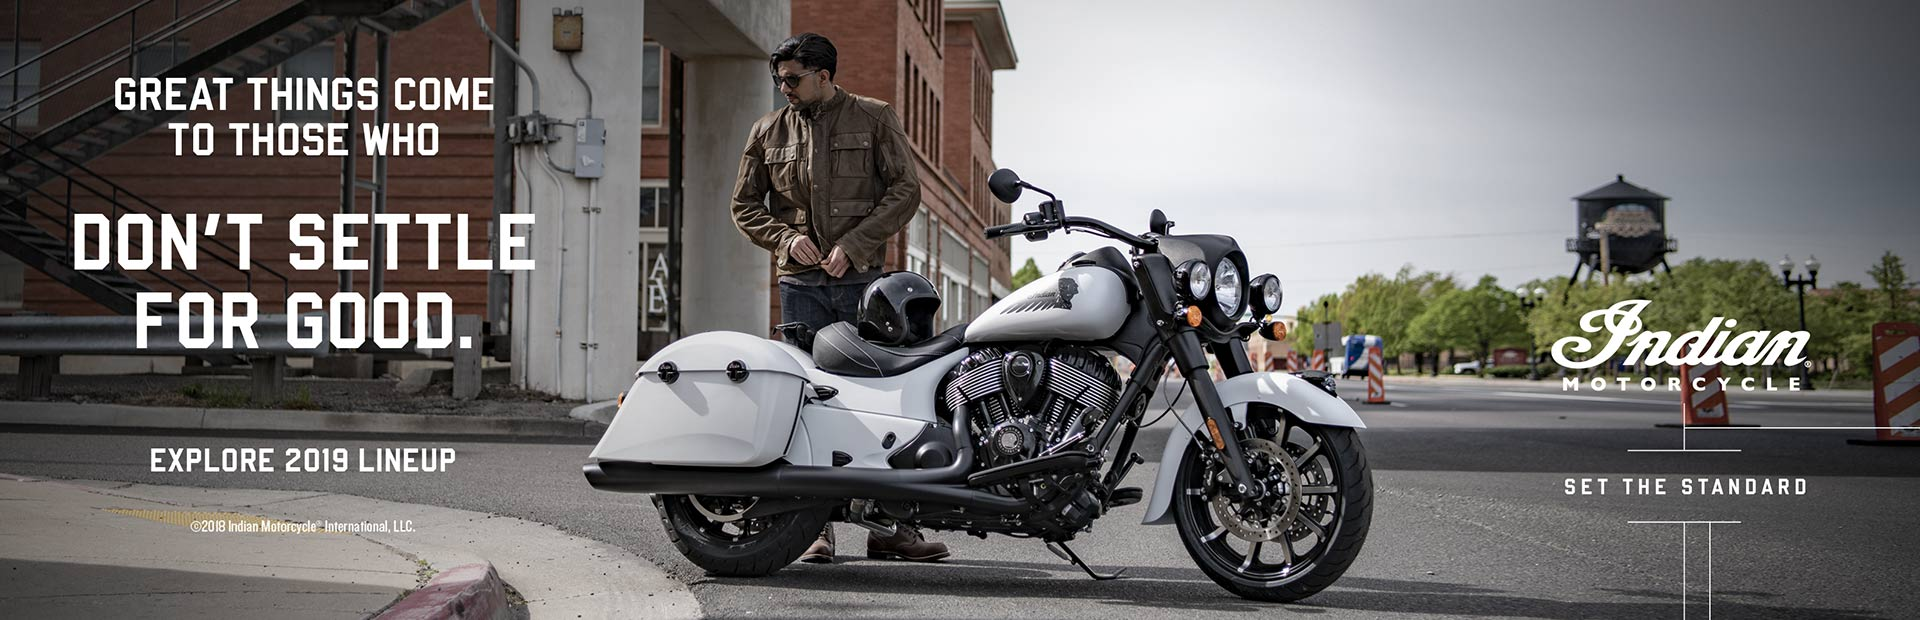 Indian Motorcycle: Special Offers